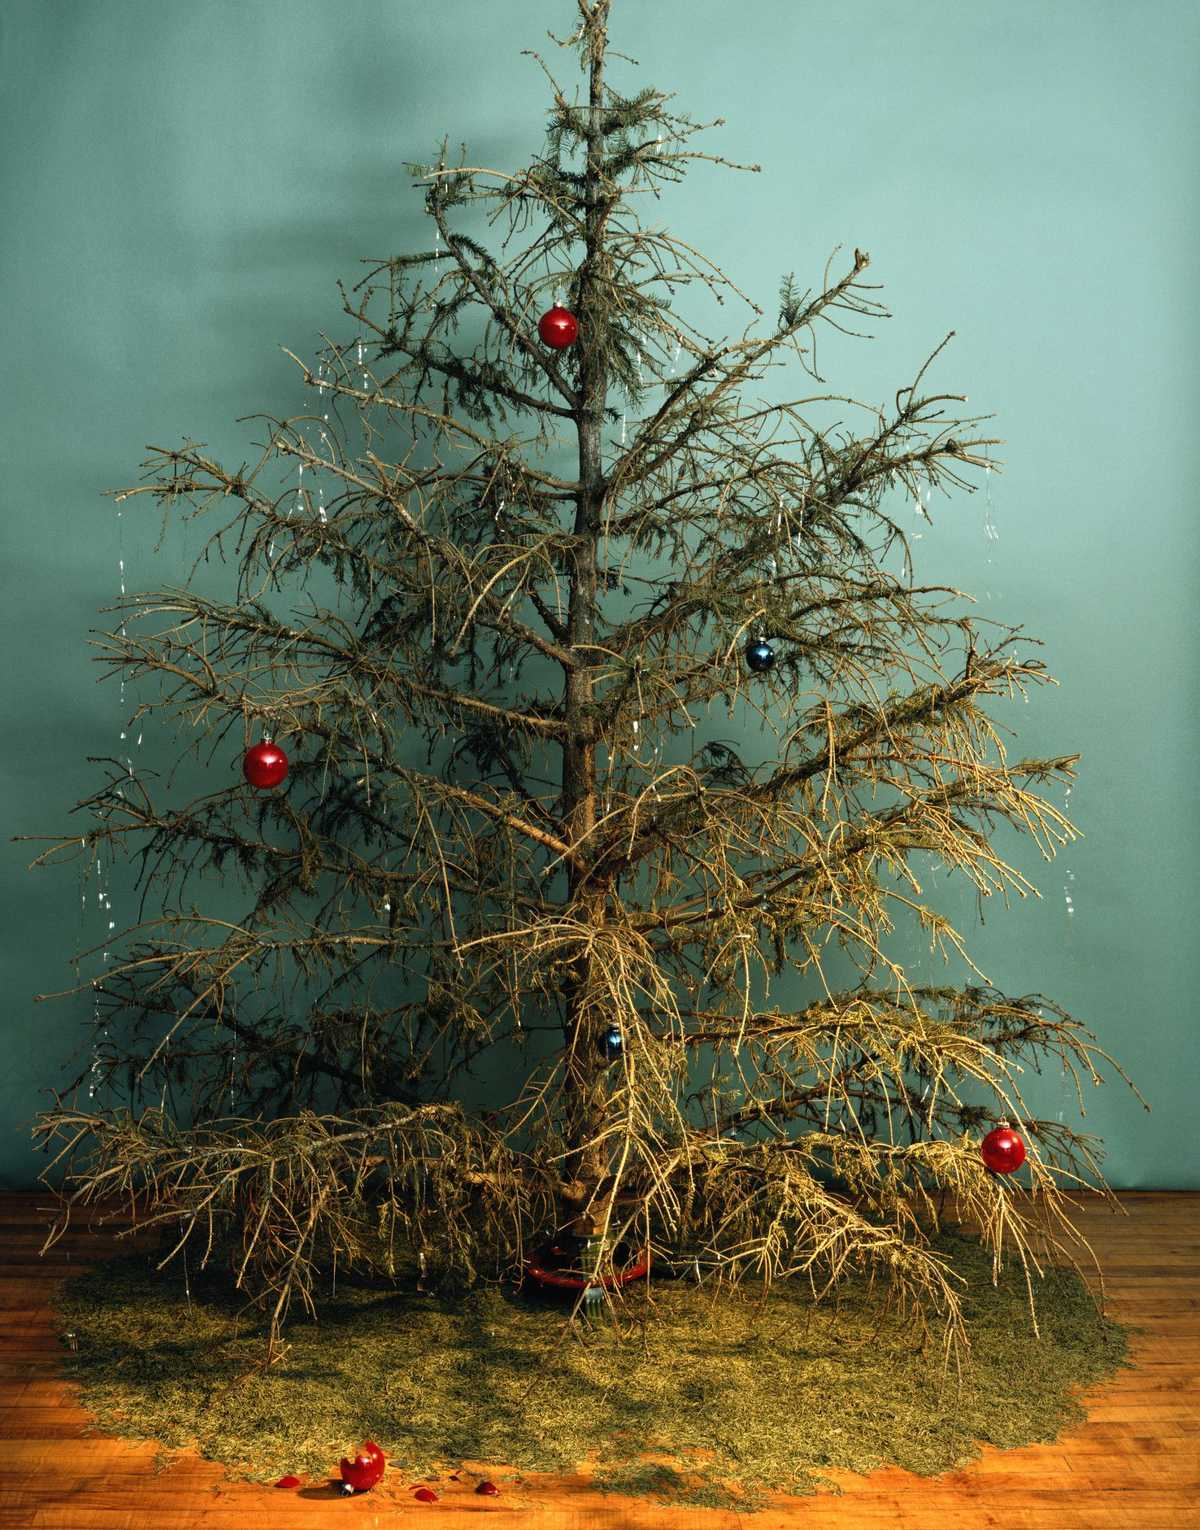 When your Christmas tree dies, make sure to dispose of it properly